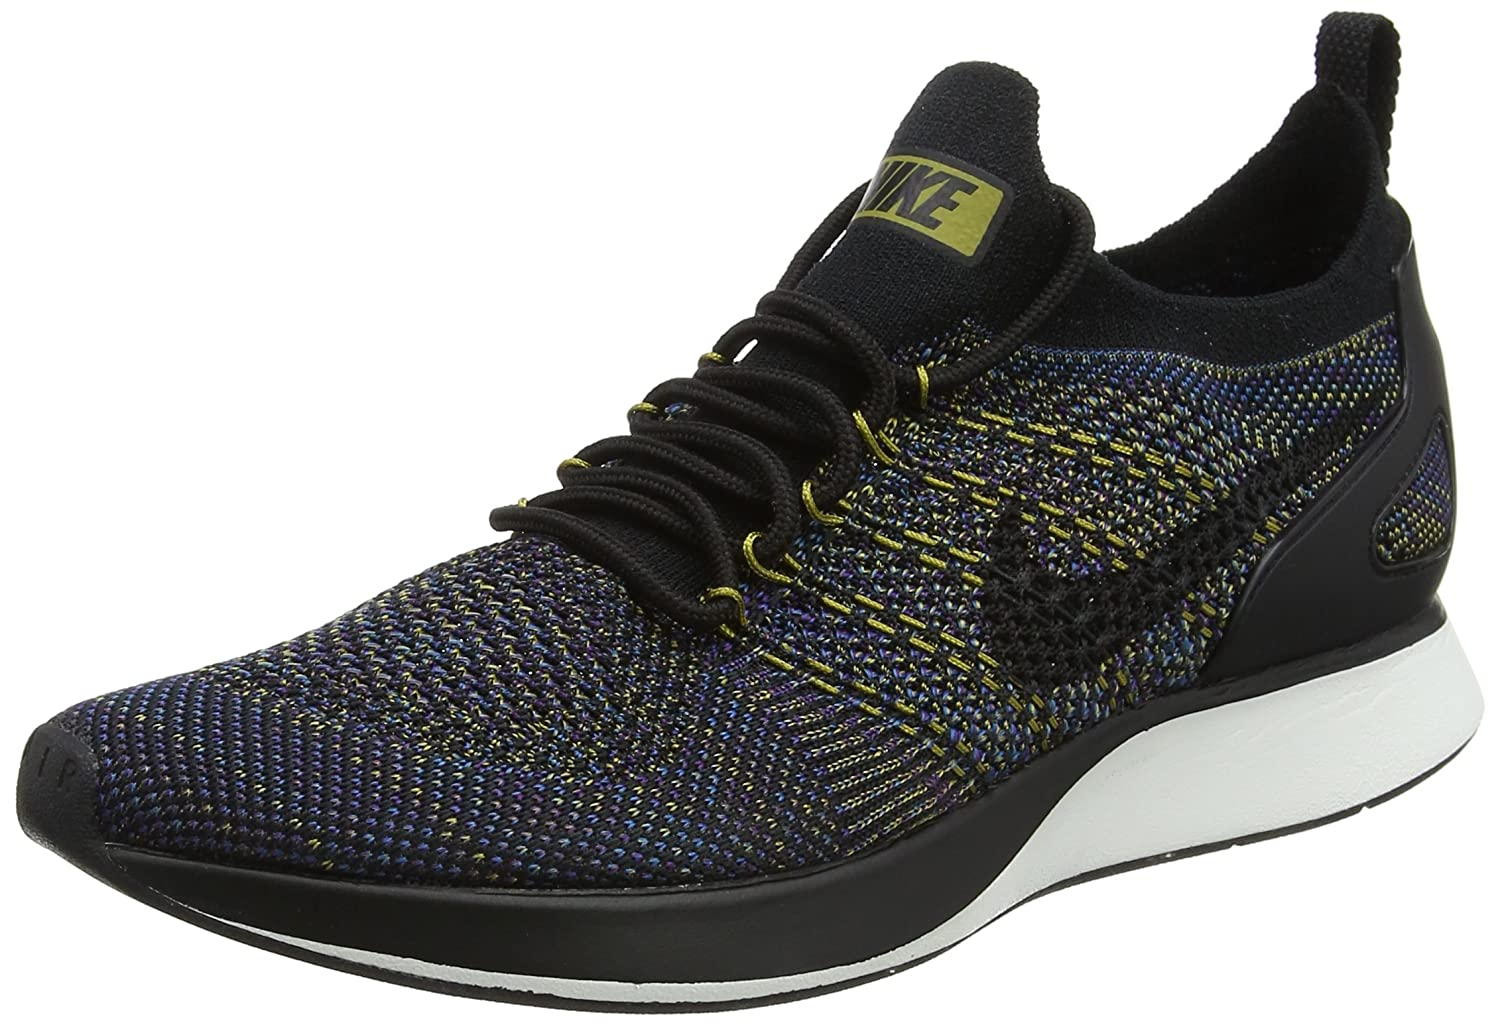 NIKE Womens Air Zoom Mariah Flyknit Racer Running Trainers Aa0521 Sneakers Shoes B0761V88ZS 7 B(M) US|Black / Summit White